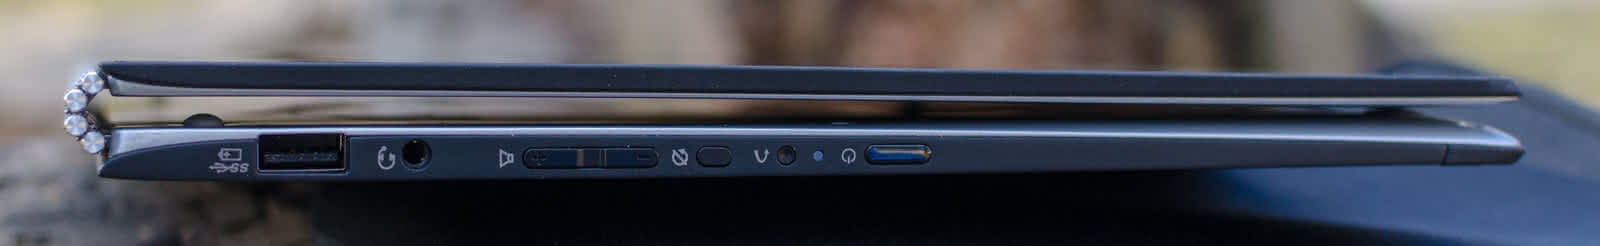 Re-review of the Lenovo Yoga 3 Pro laptop/tablet hybrid 3